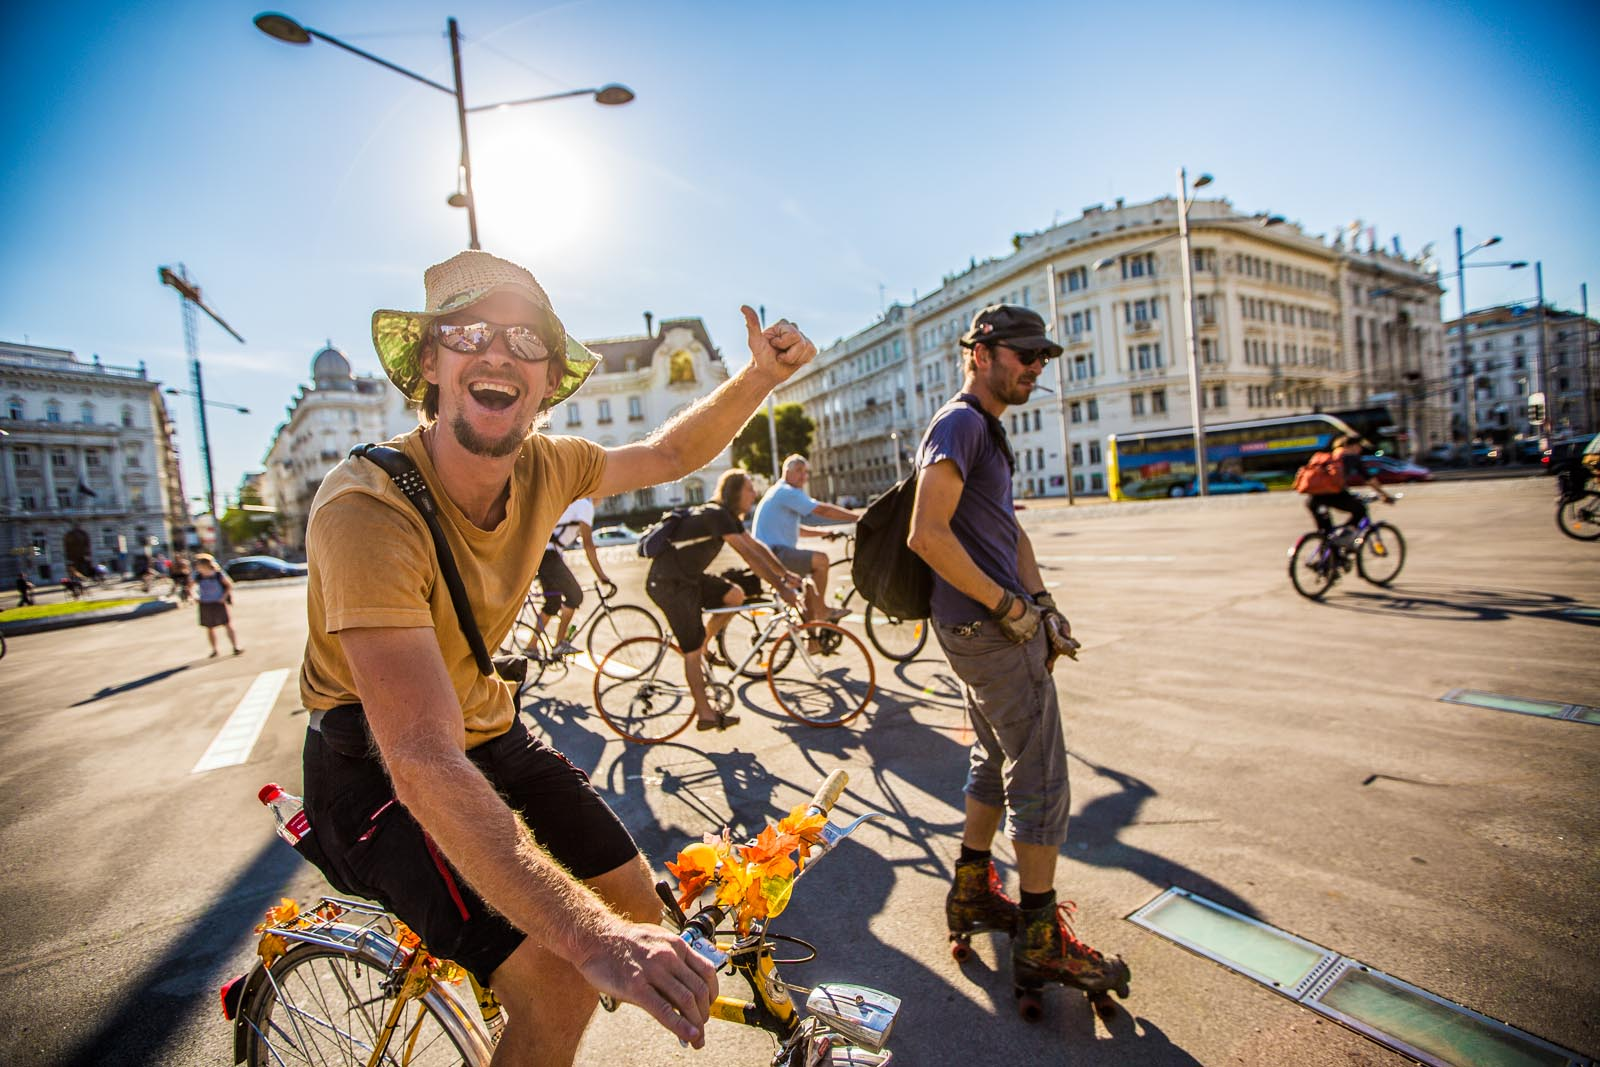 Thumbs up for rollerskates and crazy bikes!